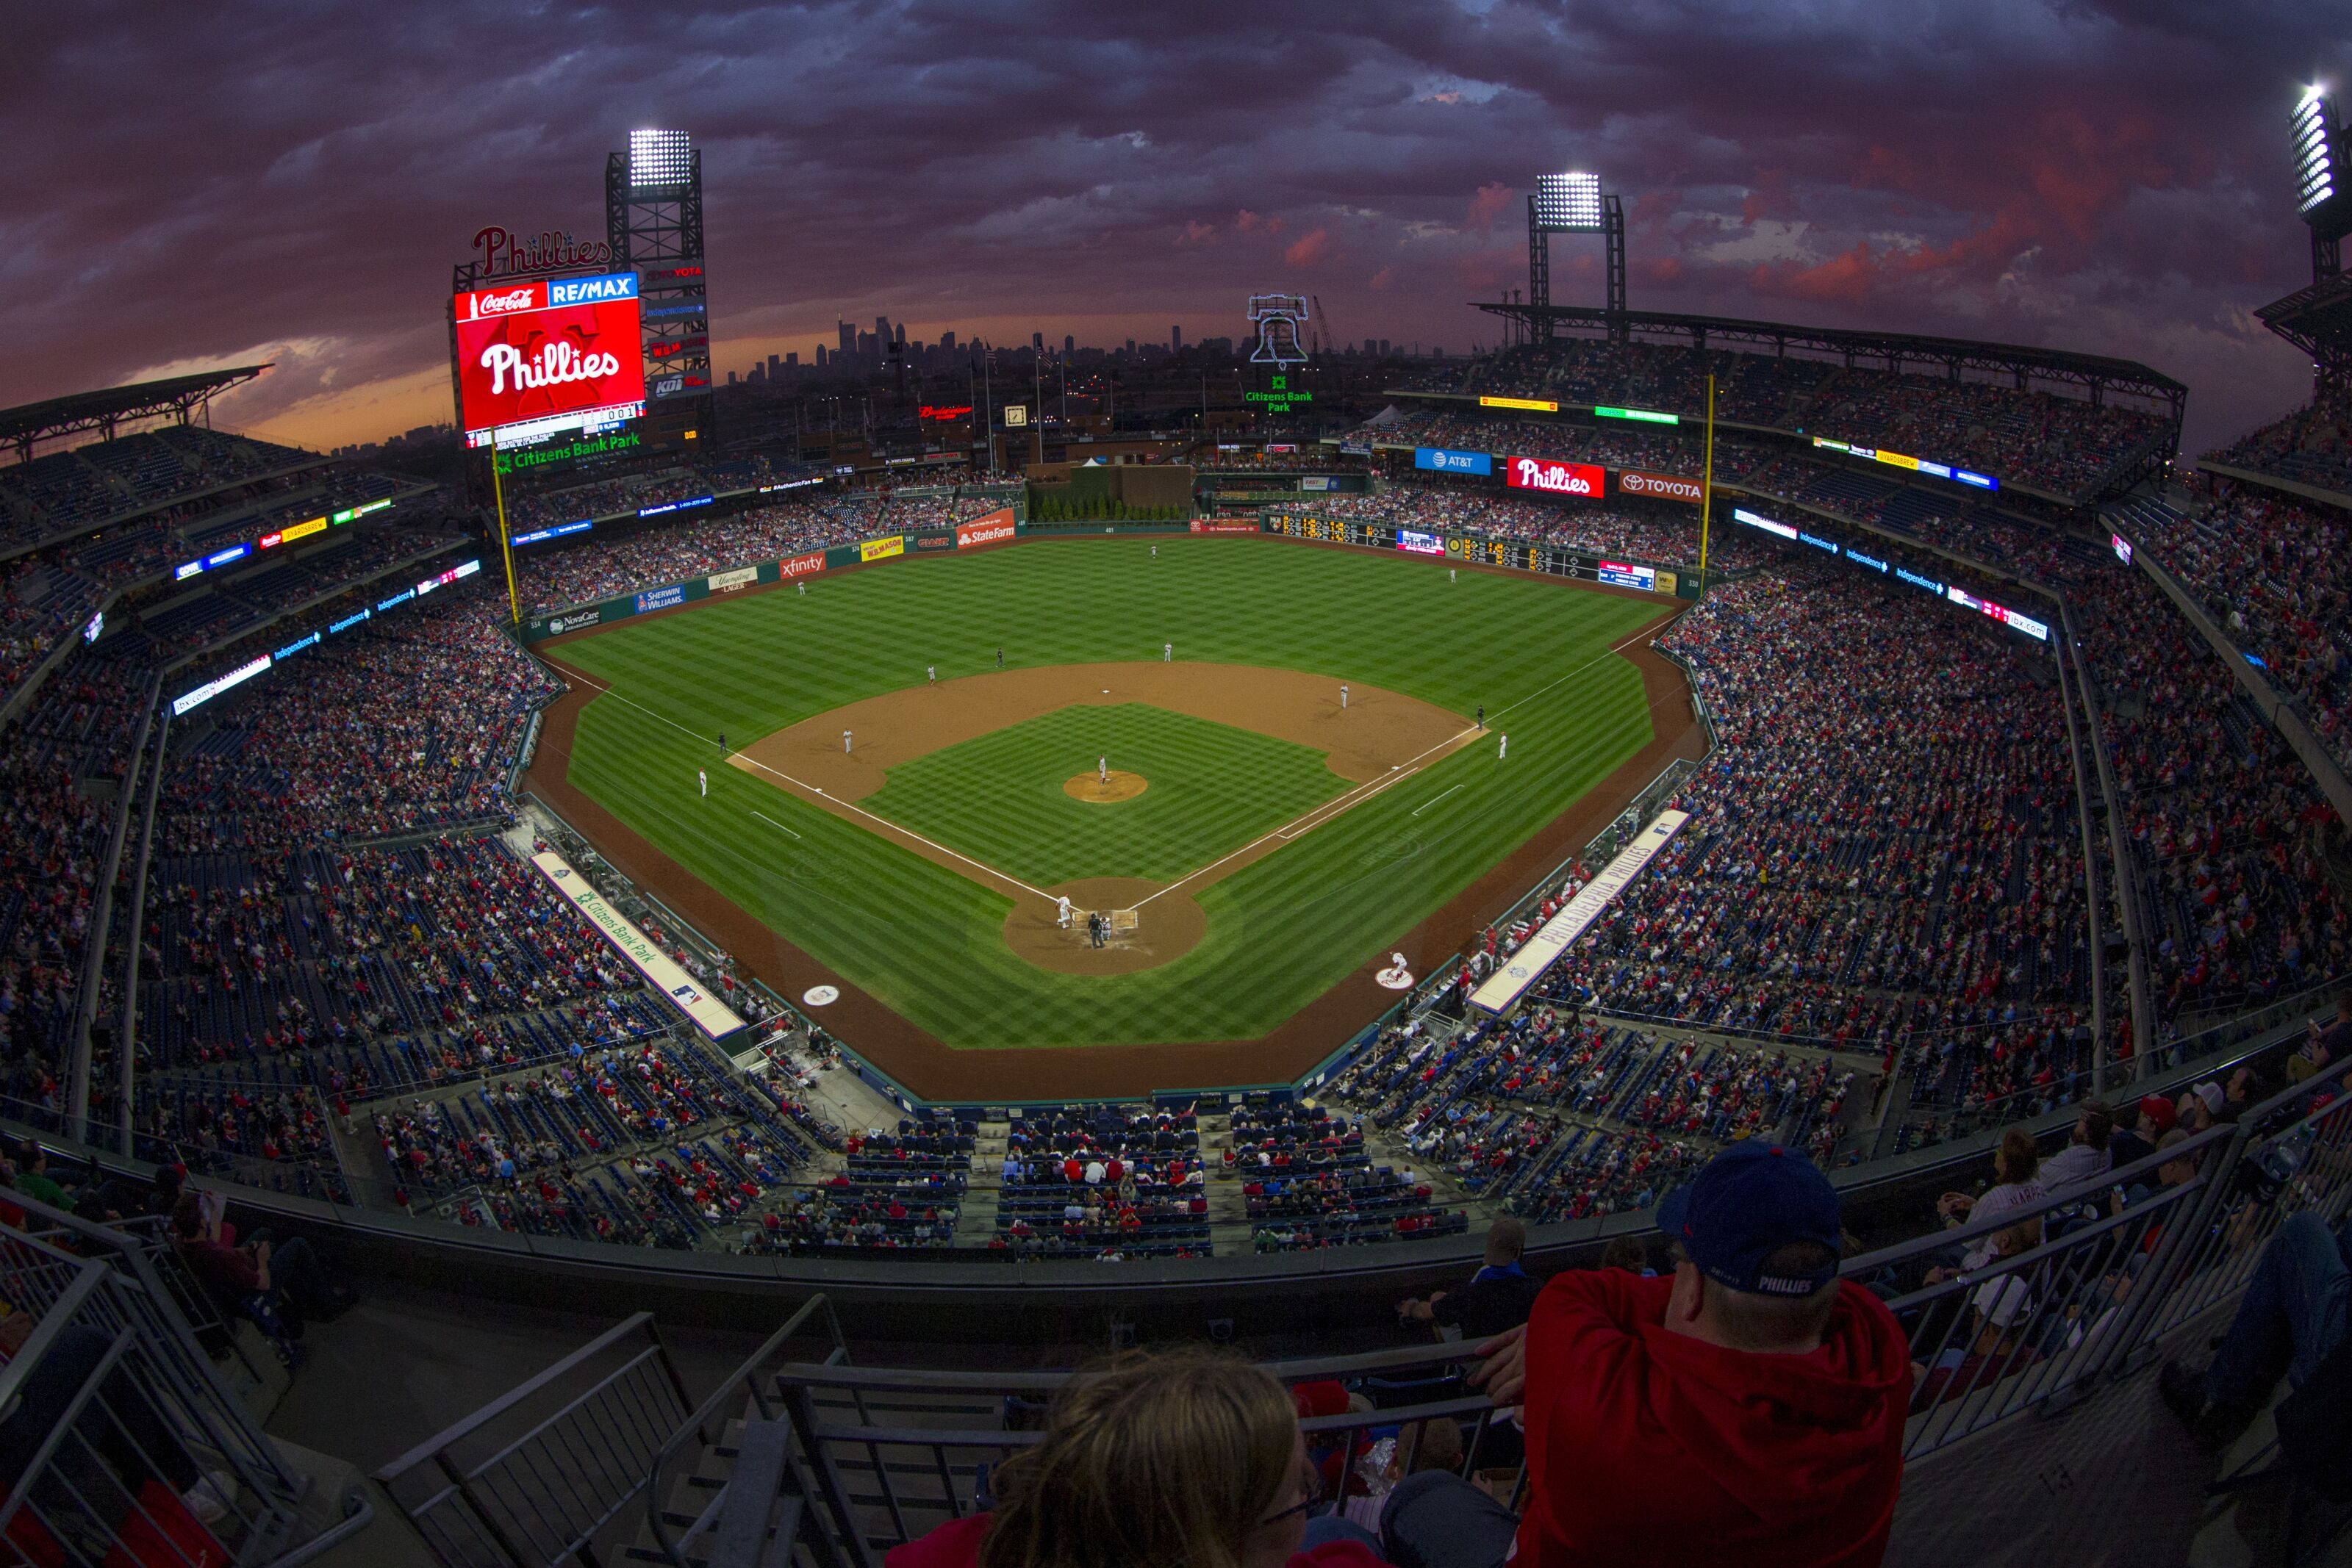 PHILADELPHIA, PA - APRIL 09: A general view of Citizens Bank Park during the game between the Washington Nationals and Philadelphia Phillies on April 9, 2019 in Philadelphia, Pennsylvania. (Photo by Mitchell Leff/Getty Images)